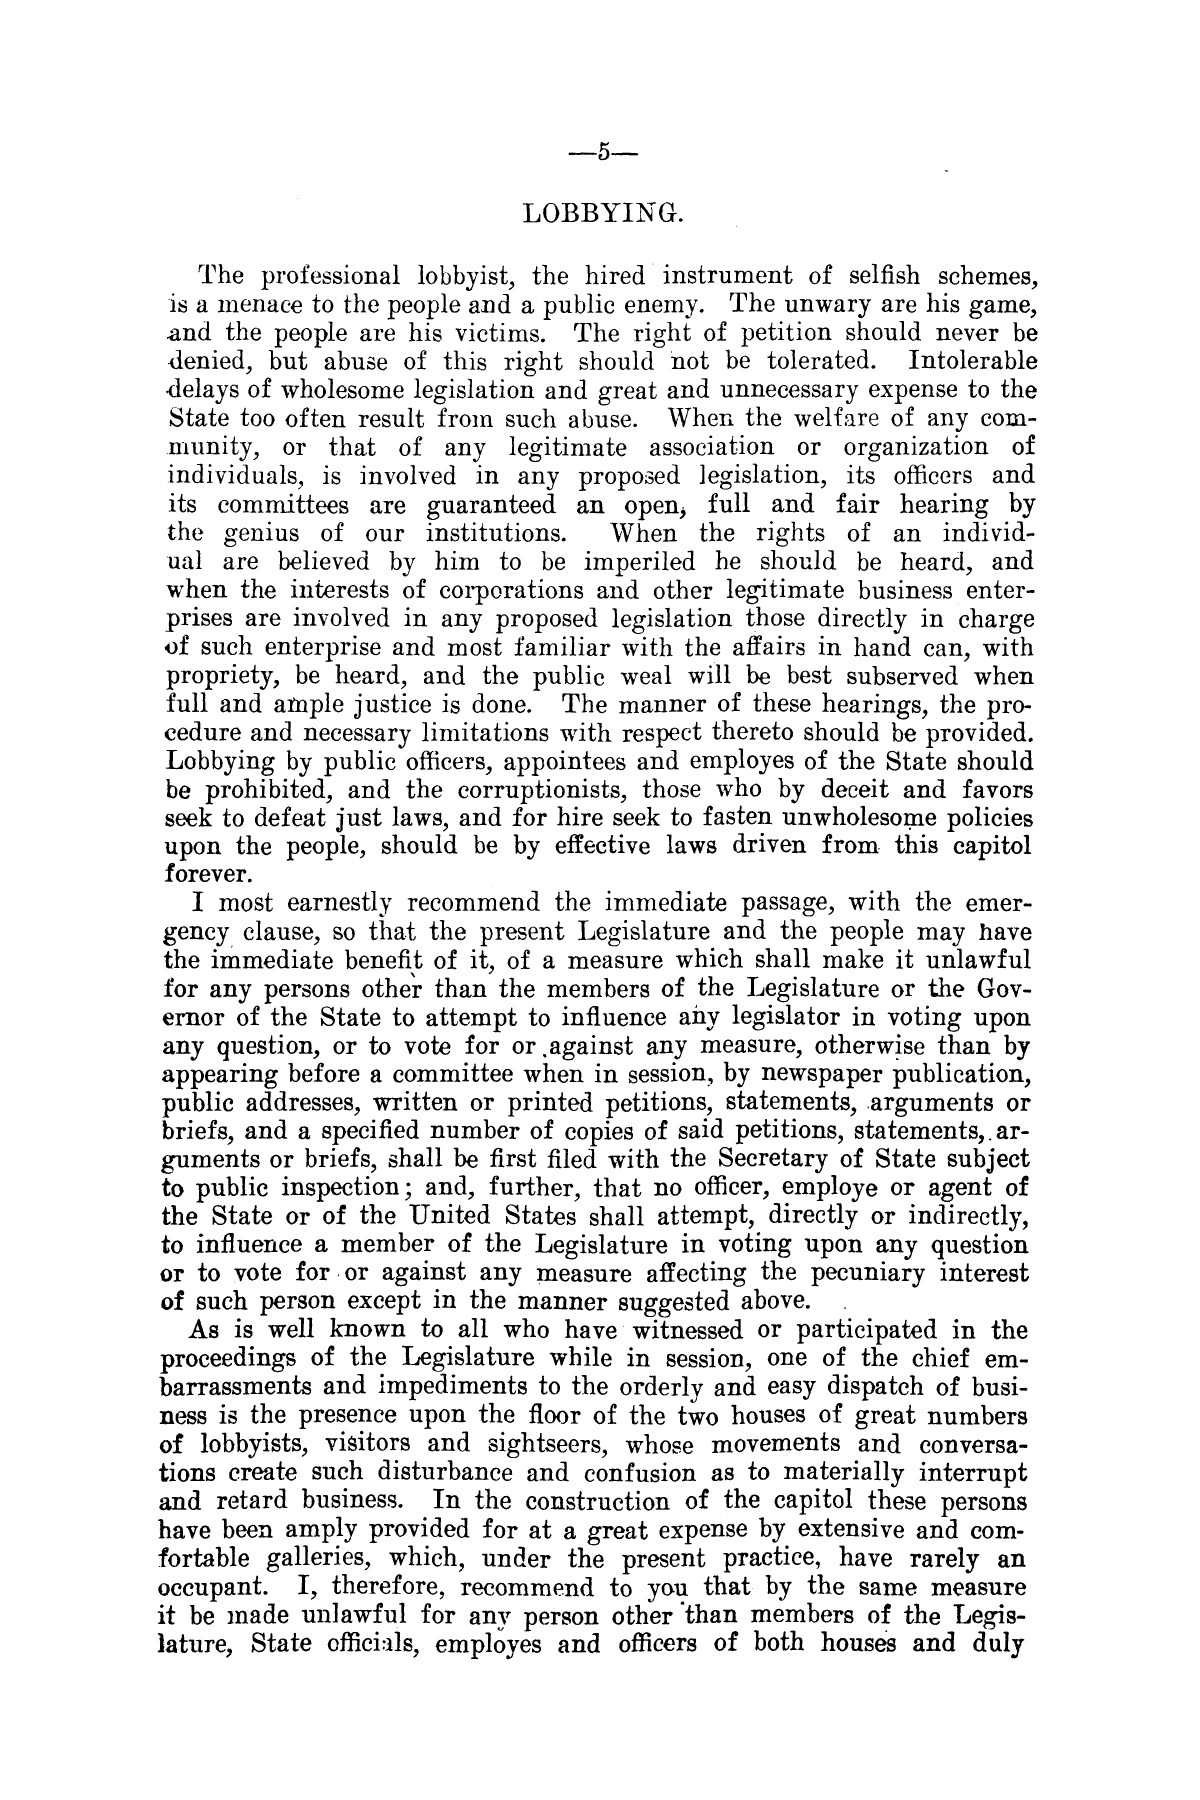 Message of Governor T.M. Campbell to the thirtieth legislature of Texas, to which is appended the State Democratic Platform adopted at Dallas, Texas, August 13, 1906.                                                                                                      [Sequence #]: 5 of 27